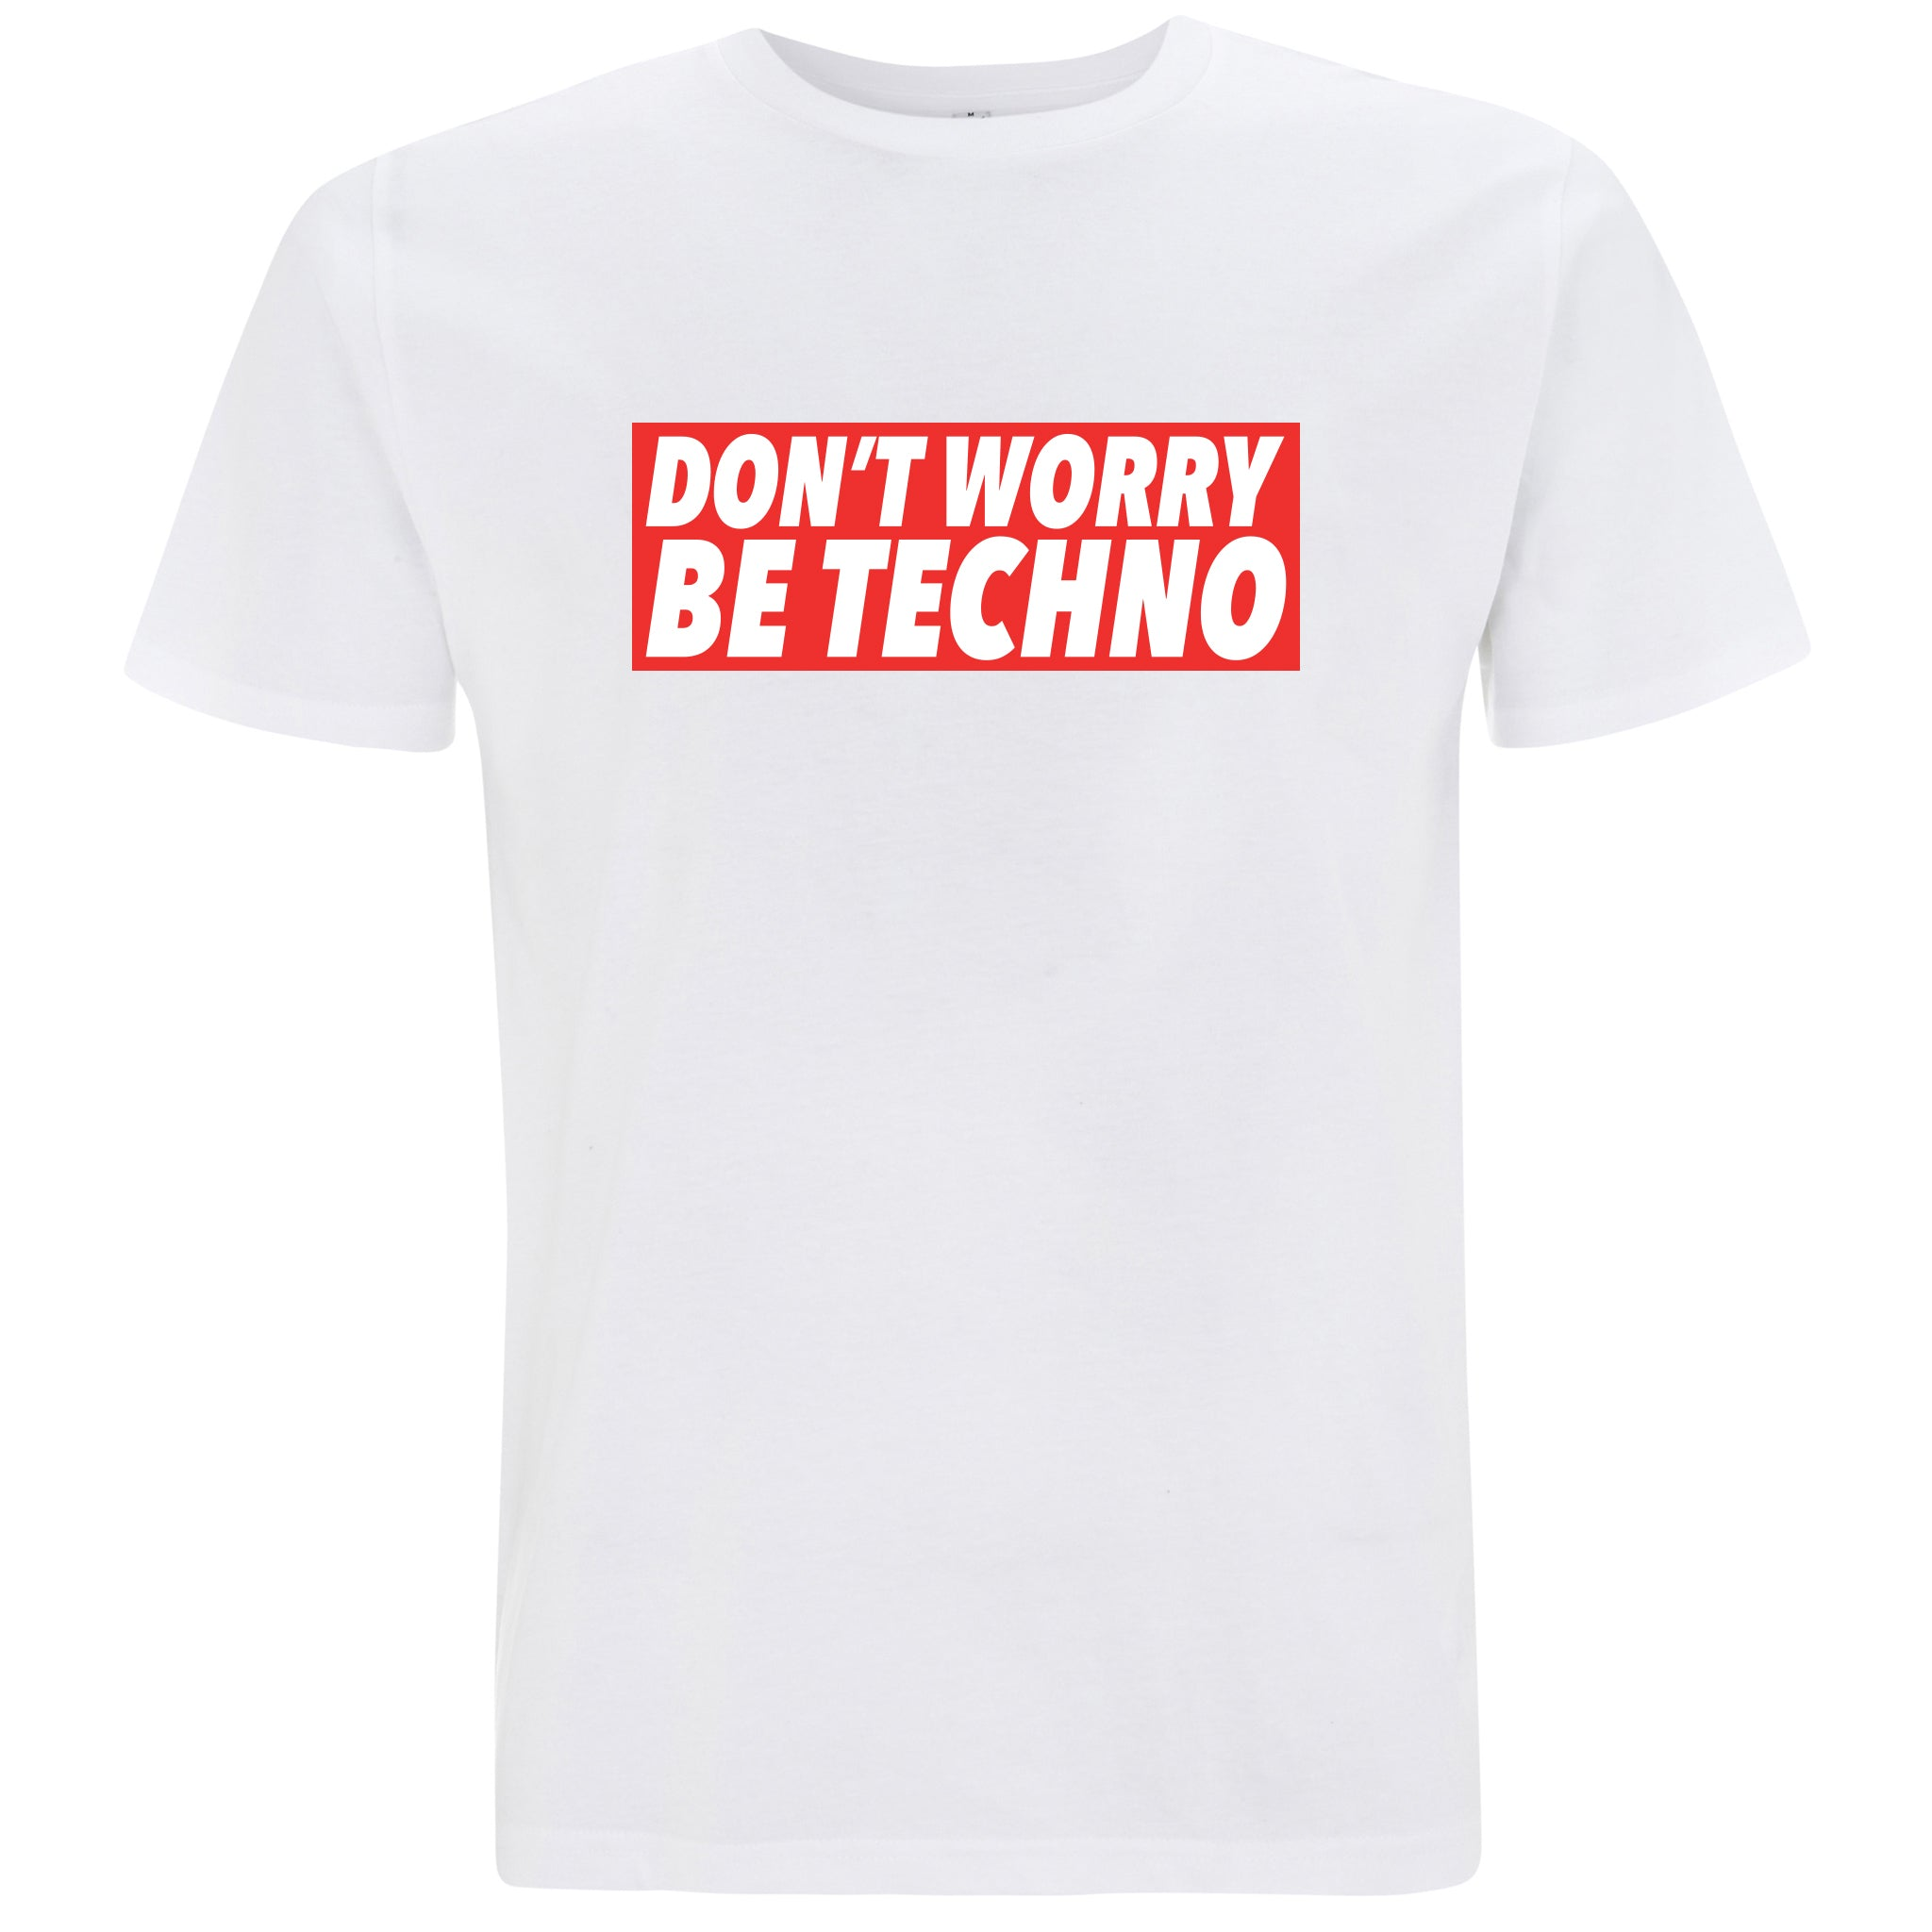 Don't Worry, Be Techno - T-shirt Uomo - T-Shirt by Fol The Brand